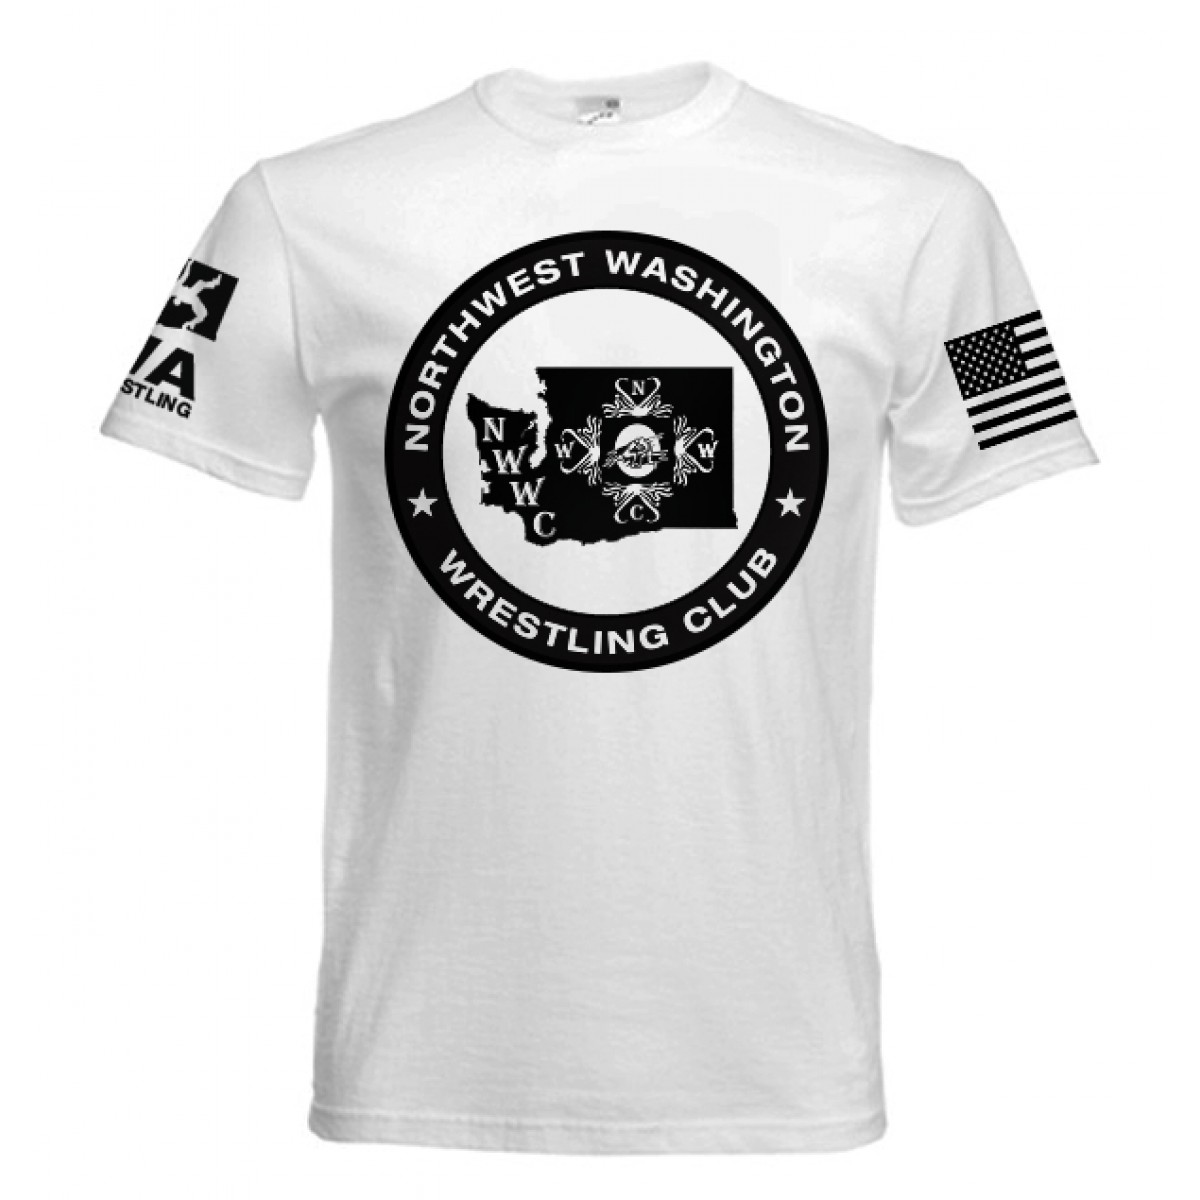 NWWC White T-shirt Black Logo-White-S